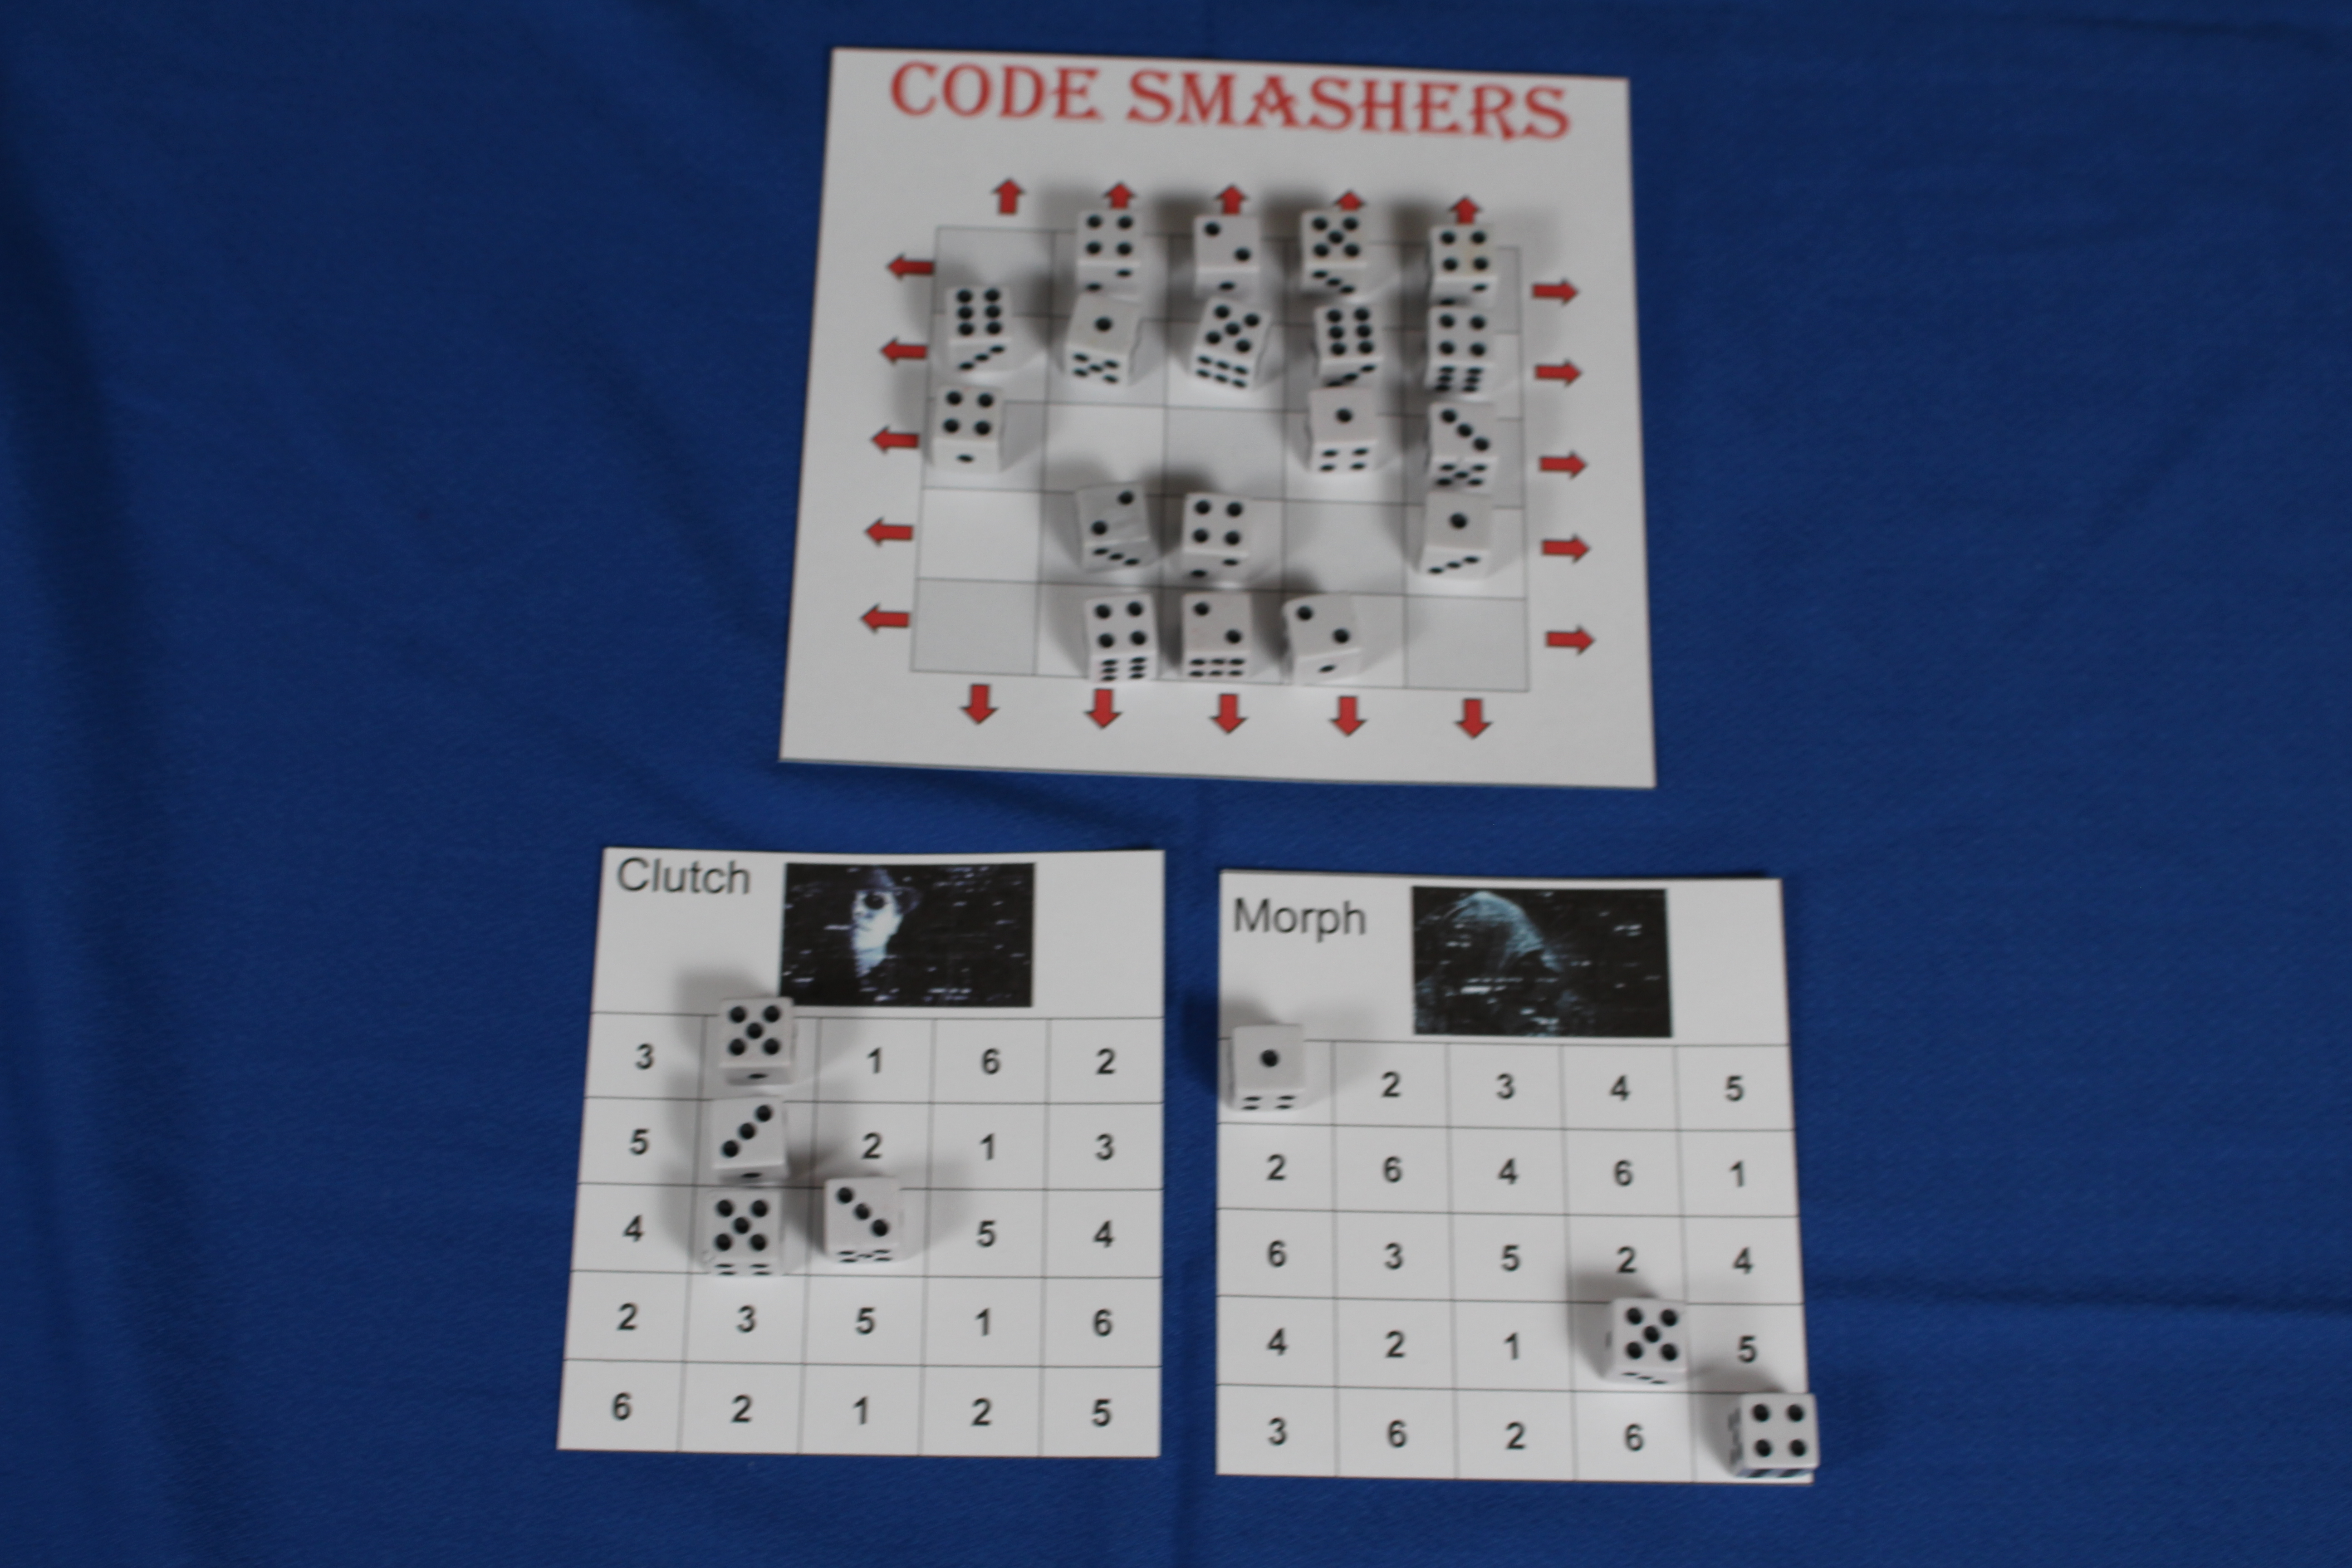 Codes Smashers overhead shot with dice placed